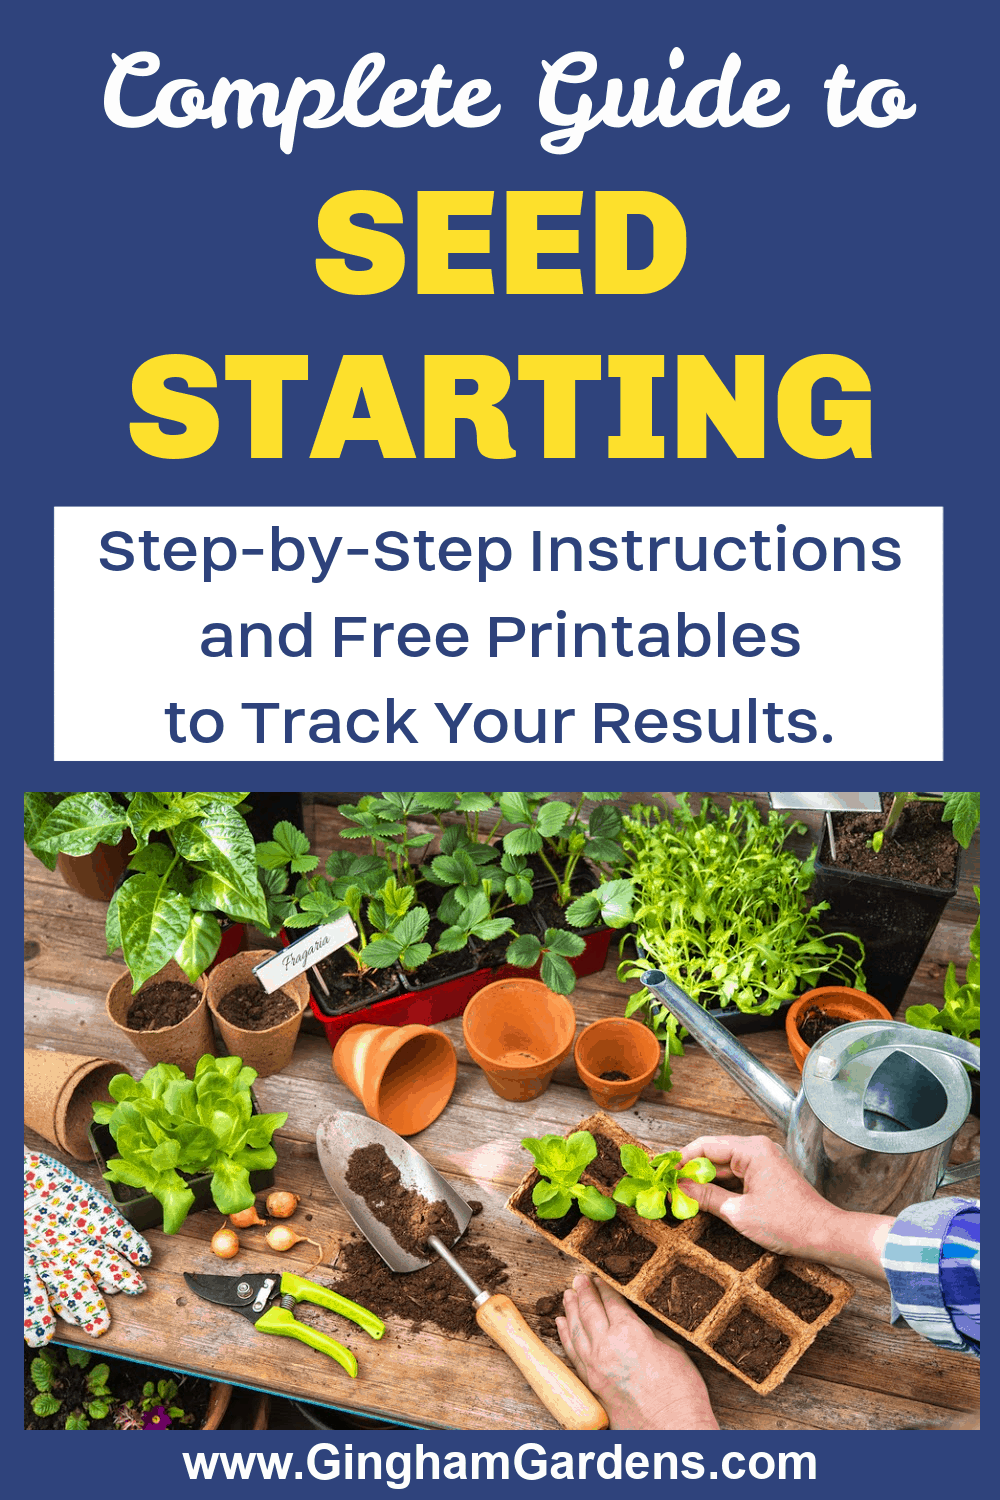 Image of Seedlings and Seed Starting Supplies with text overlay - Seed Starting